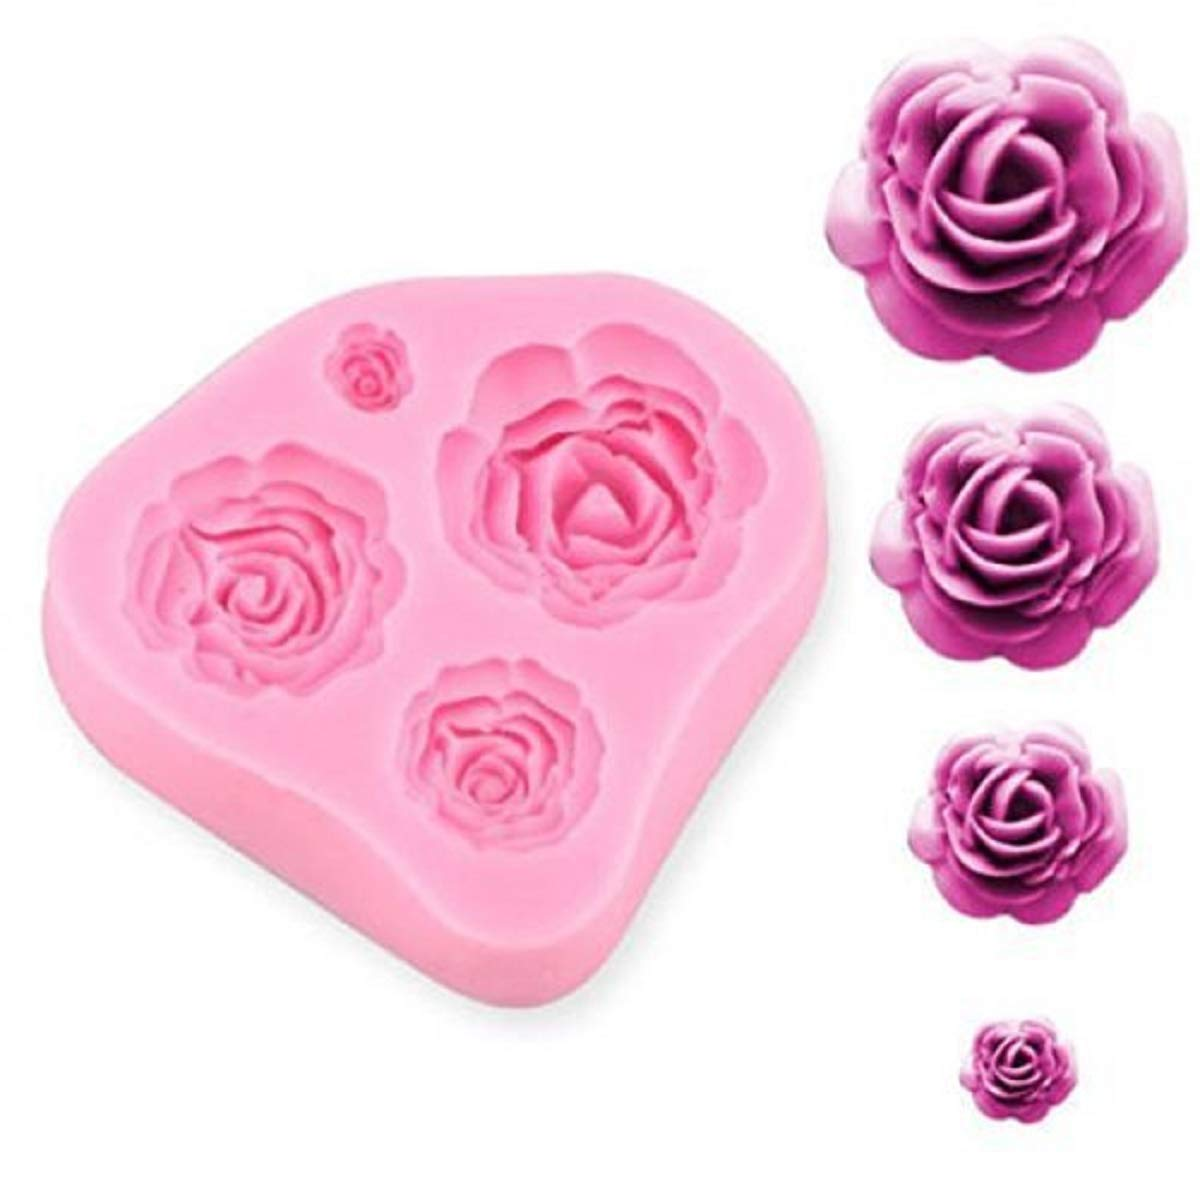 SUNKOOL NW-028 Roses Flower Silicone Cake Mold Chocolate Sugarcraft Decorating Fondant Fimo Tools 4 Size Pink 1 Piece Ninewell